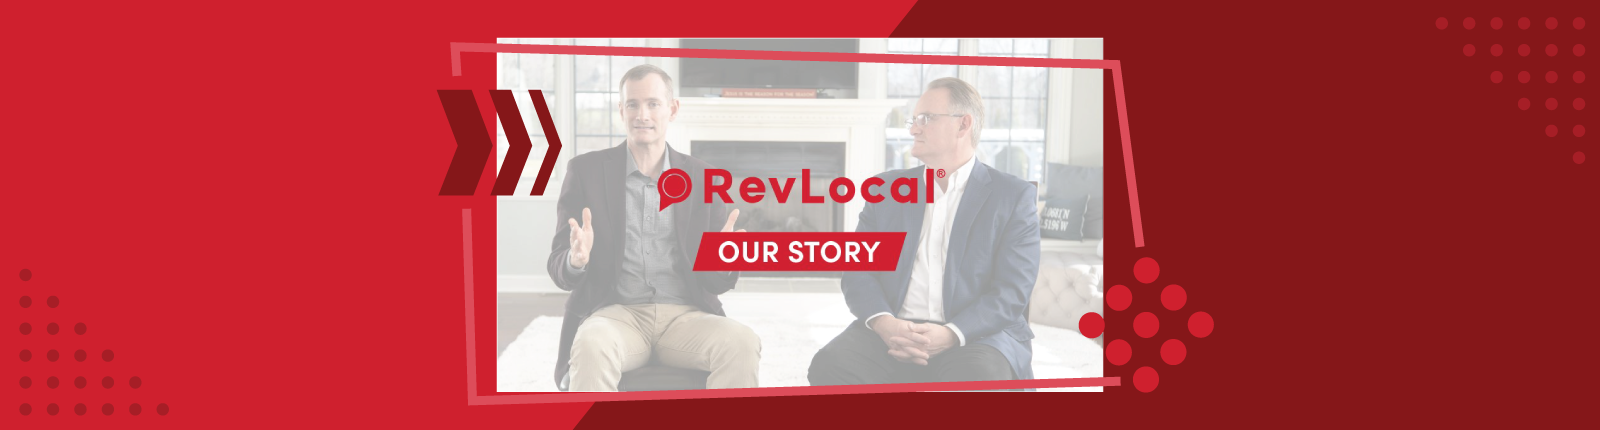 RevLocal Our Story Banner